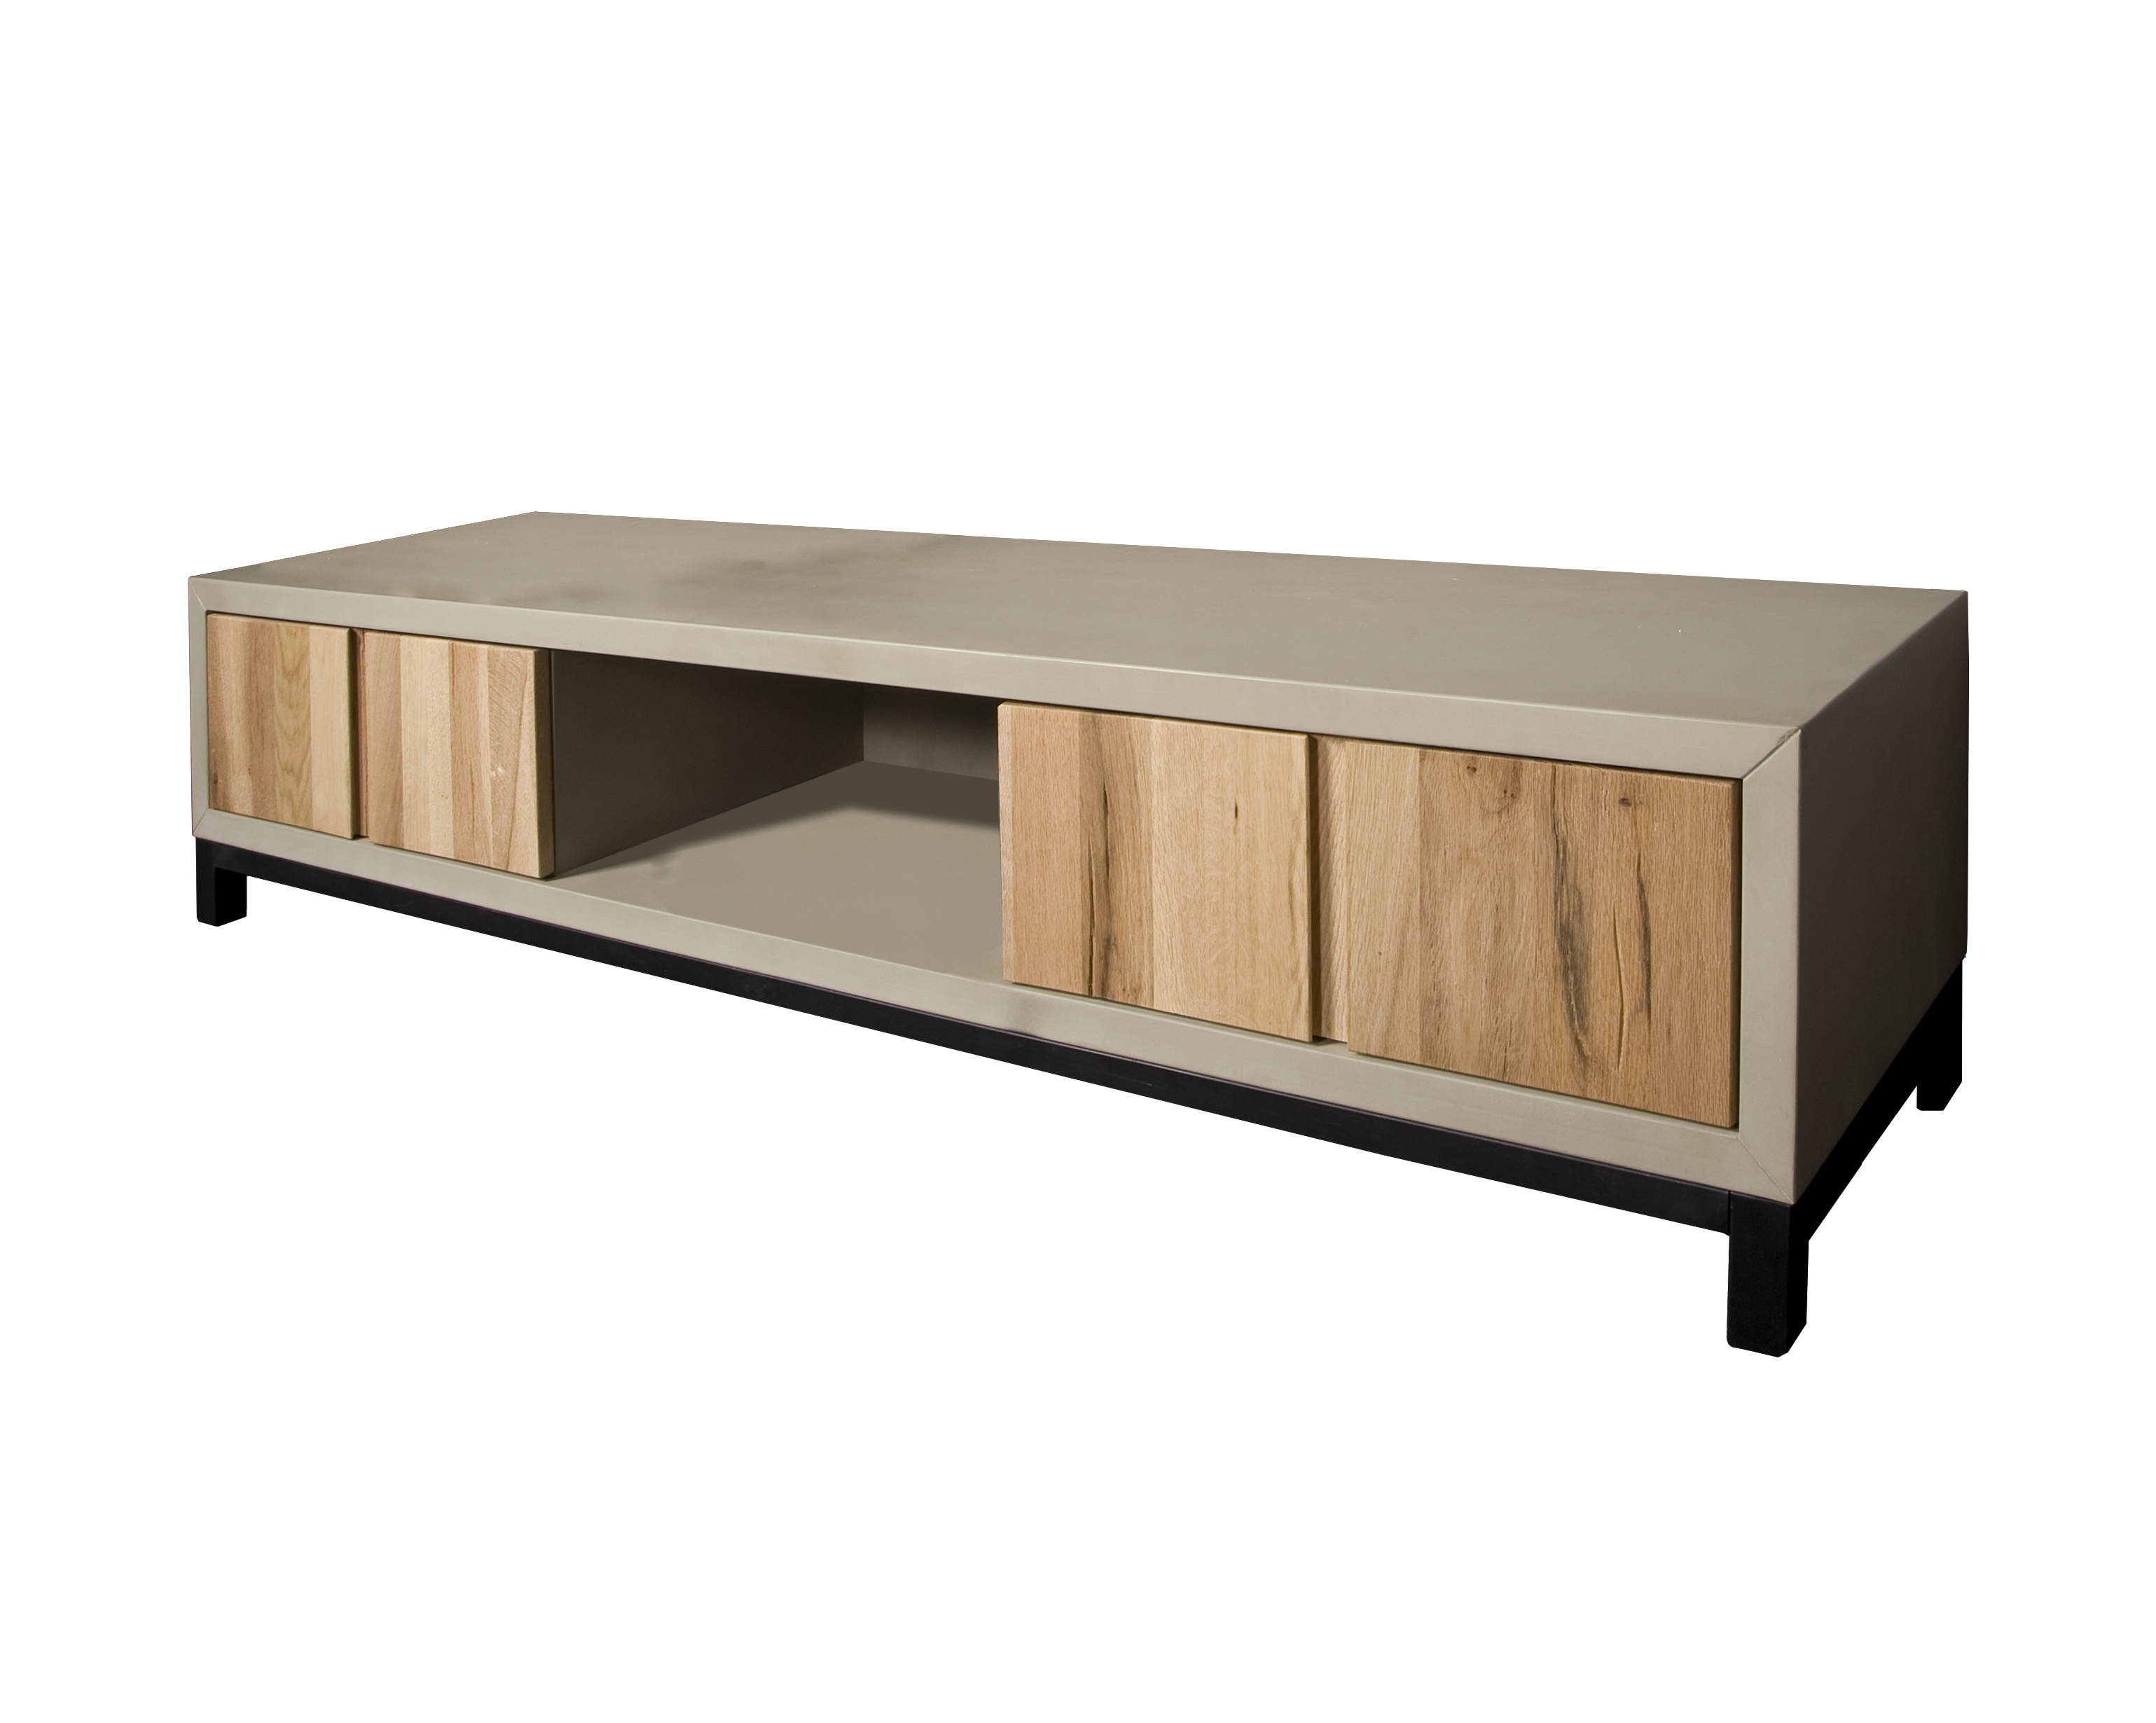 preston tv meubel beton eikenhout 180 cm markus john. Black Bedroom Furniture Sets. Home Design Ideas